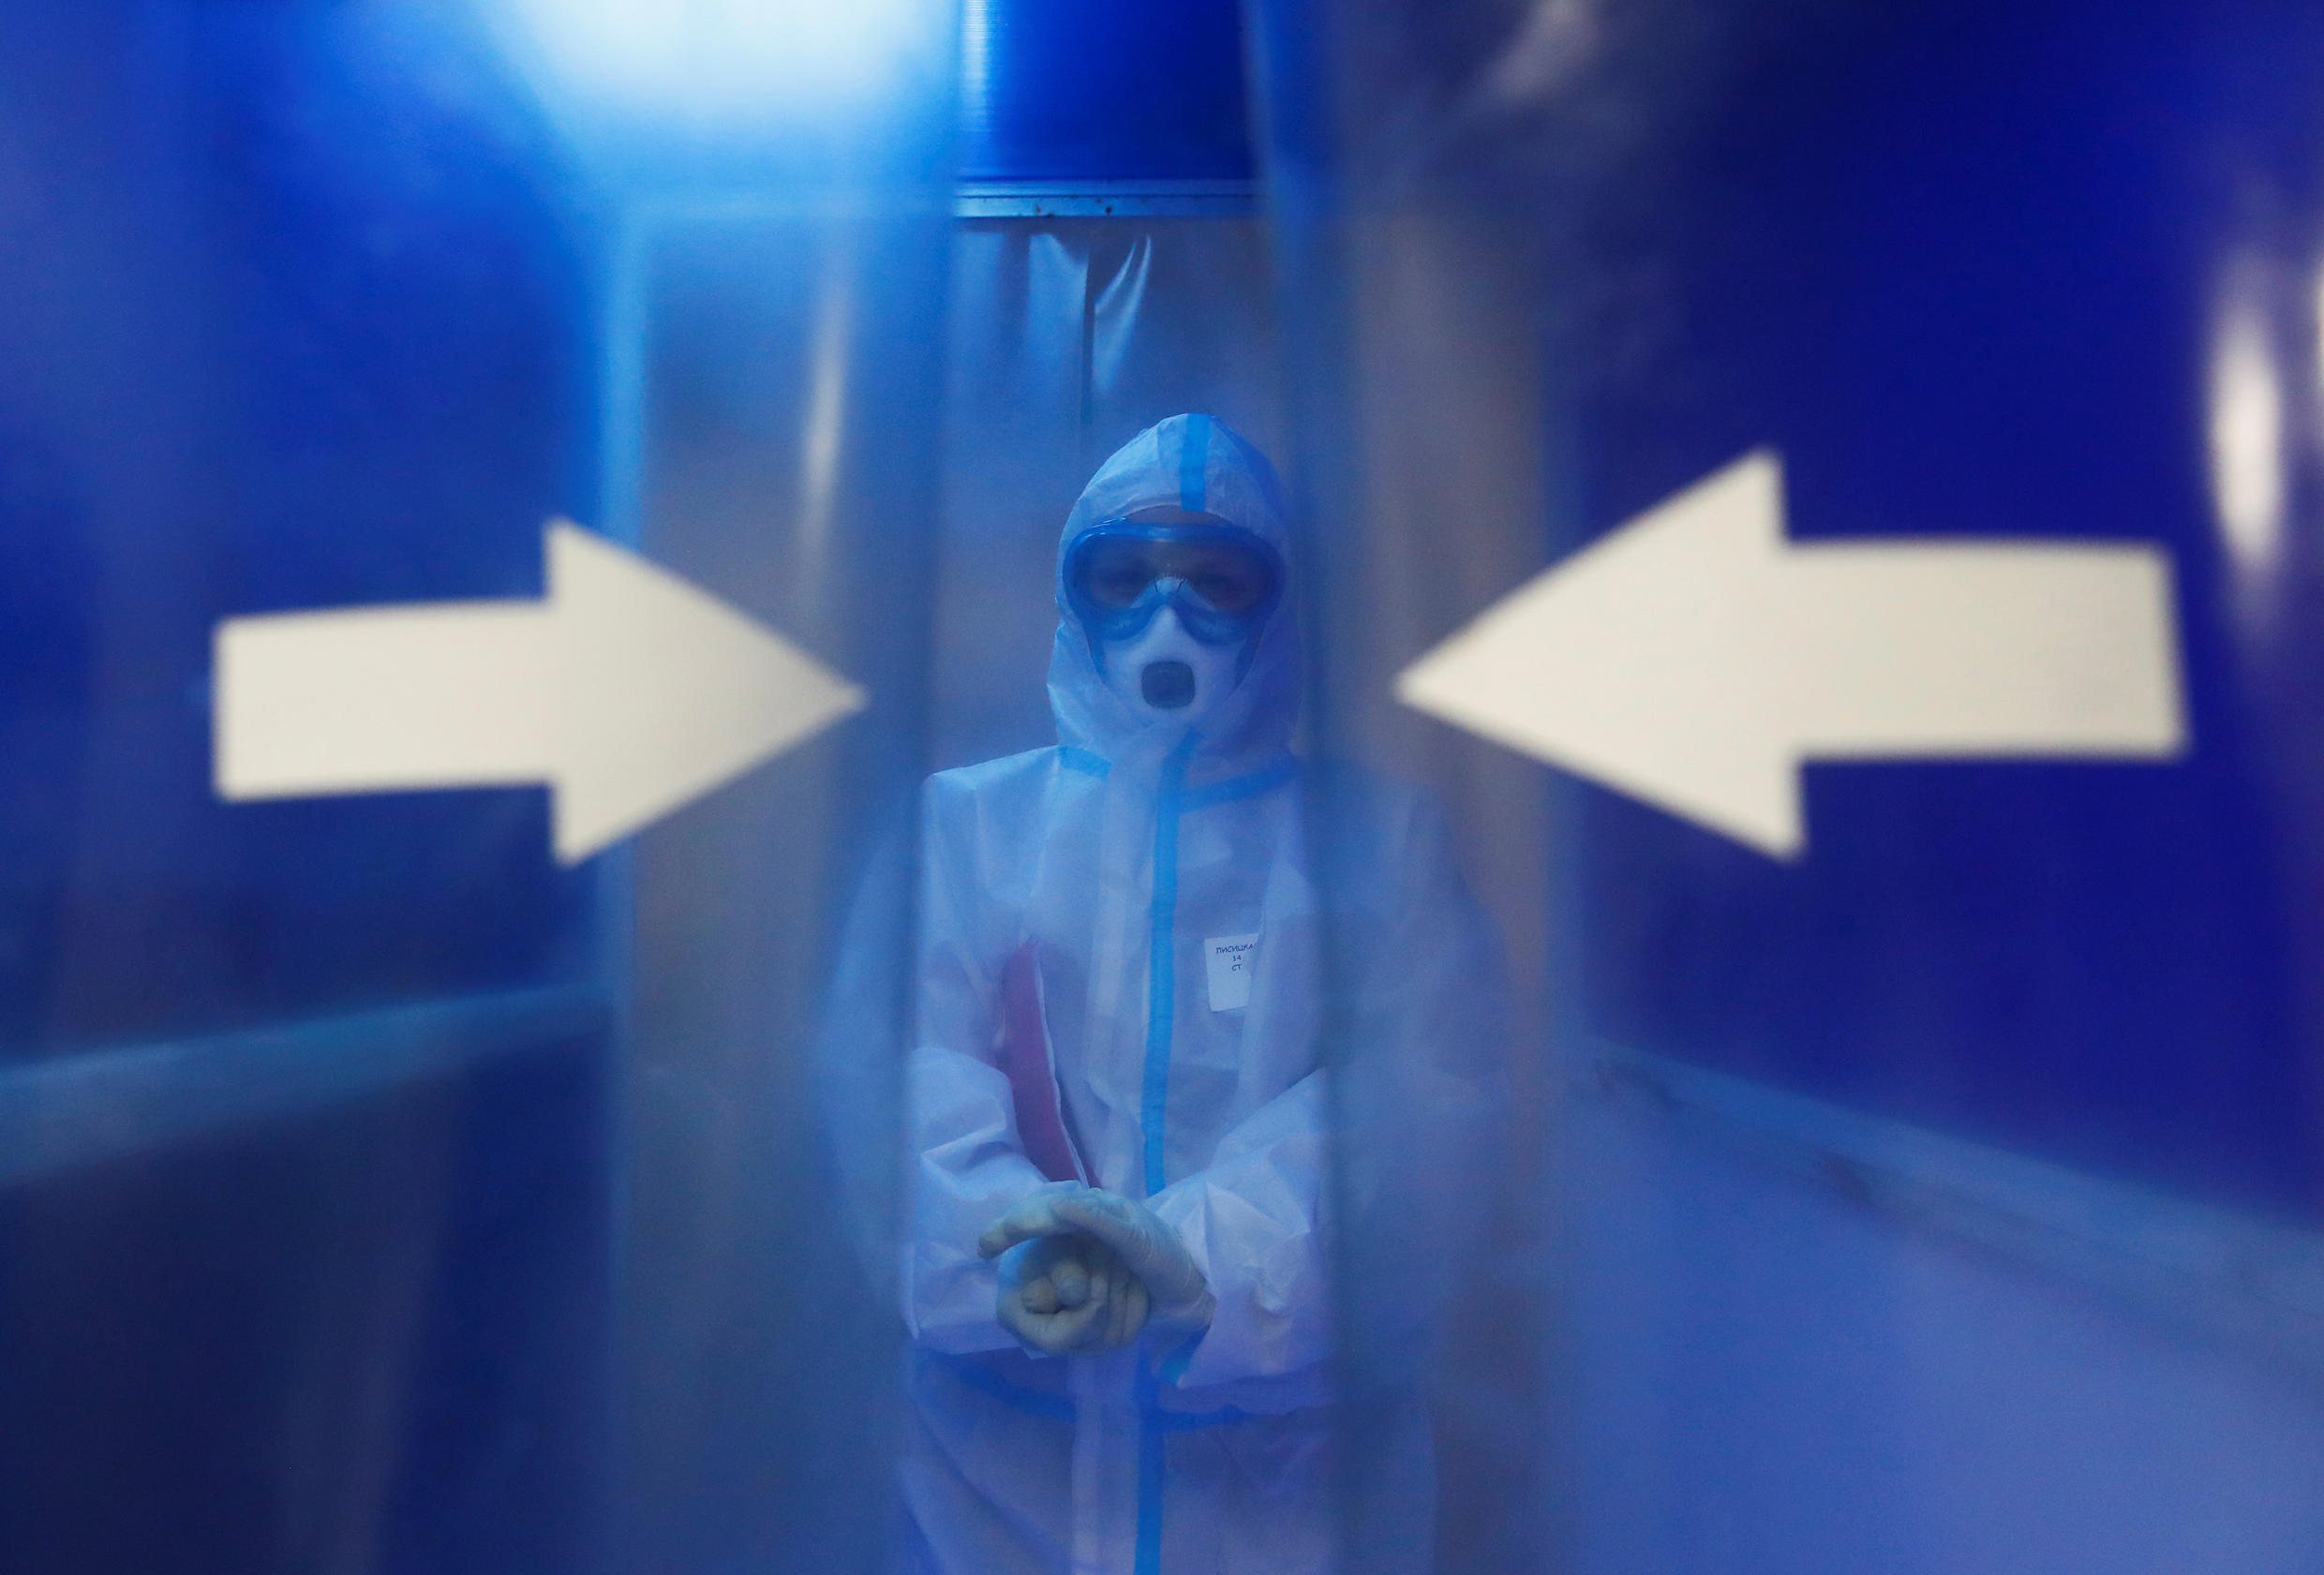 A medical specialist wearing personal protective equipment (PPE) walks through a disinfection chamber at the City Clinical Hospital Number 15 named after O. Filatov, which delivers treatment to patients infected with the coronavirus disease (COVID-19), in Moscow, Russia May 25, 2020.